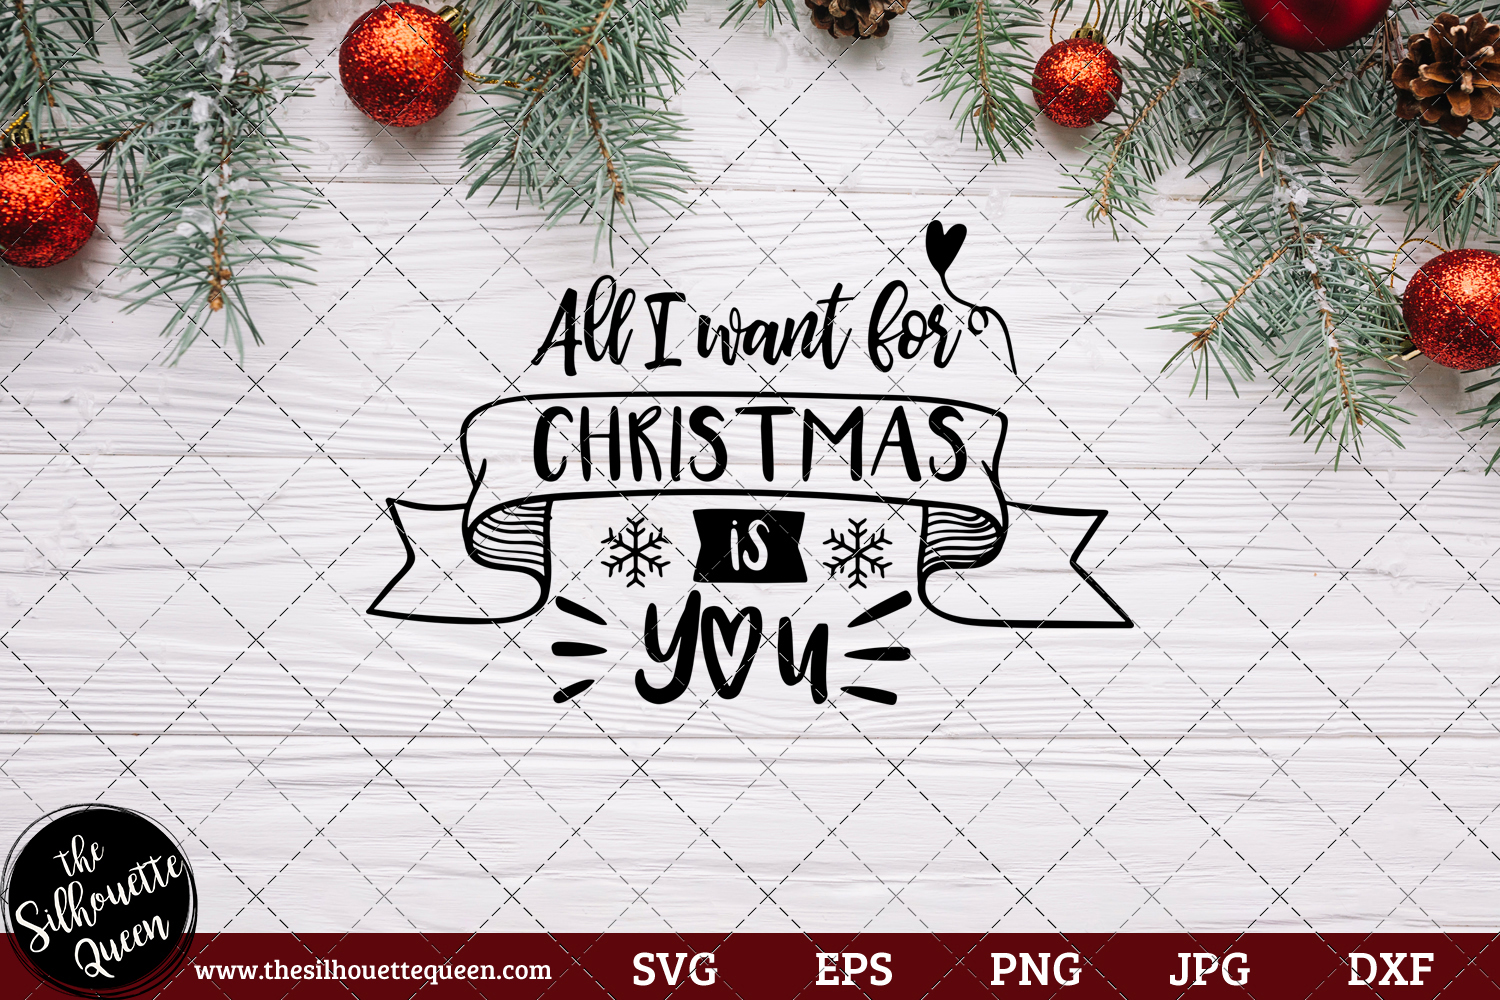 Download Free All I Want For Christmas Is You Saying Graphic By for Cricut Explore, Silhouette and other cutting machines.